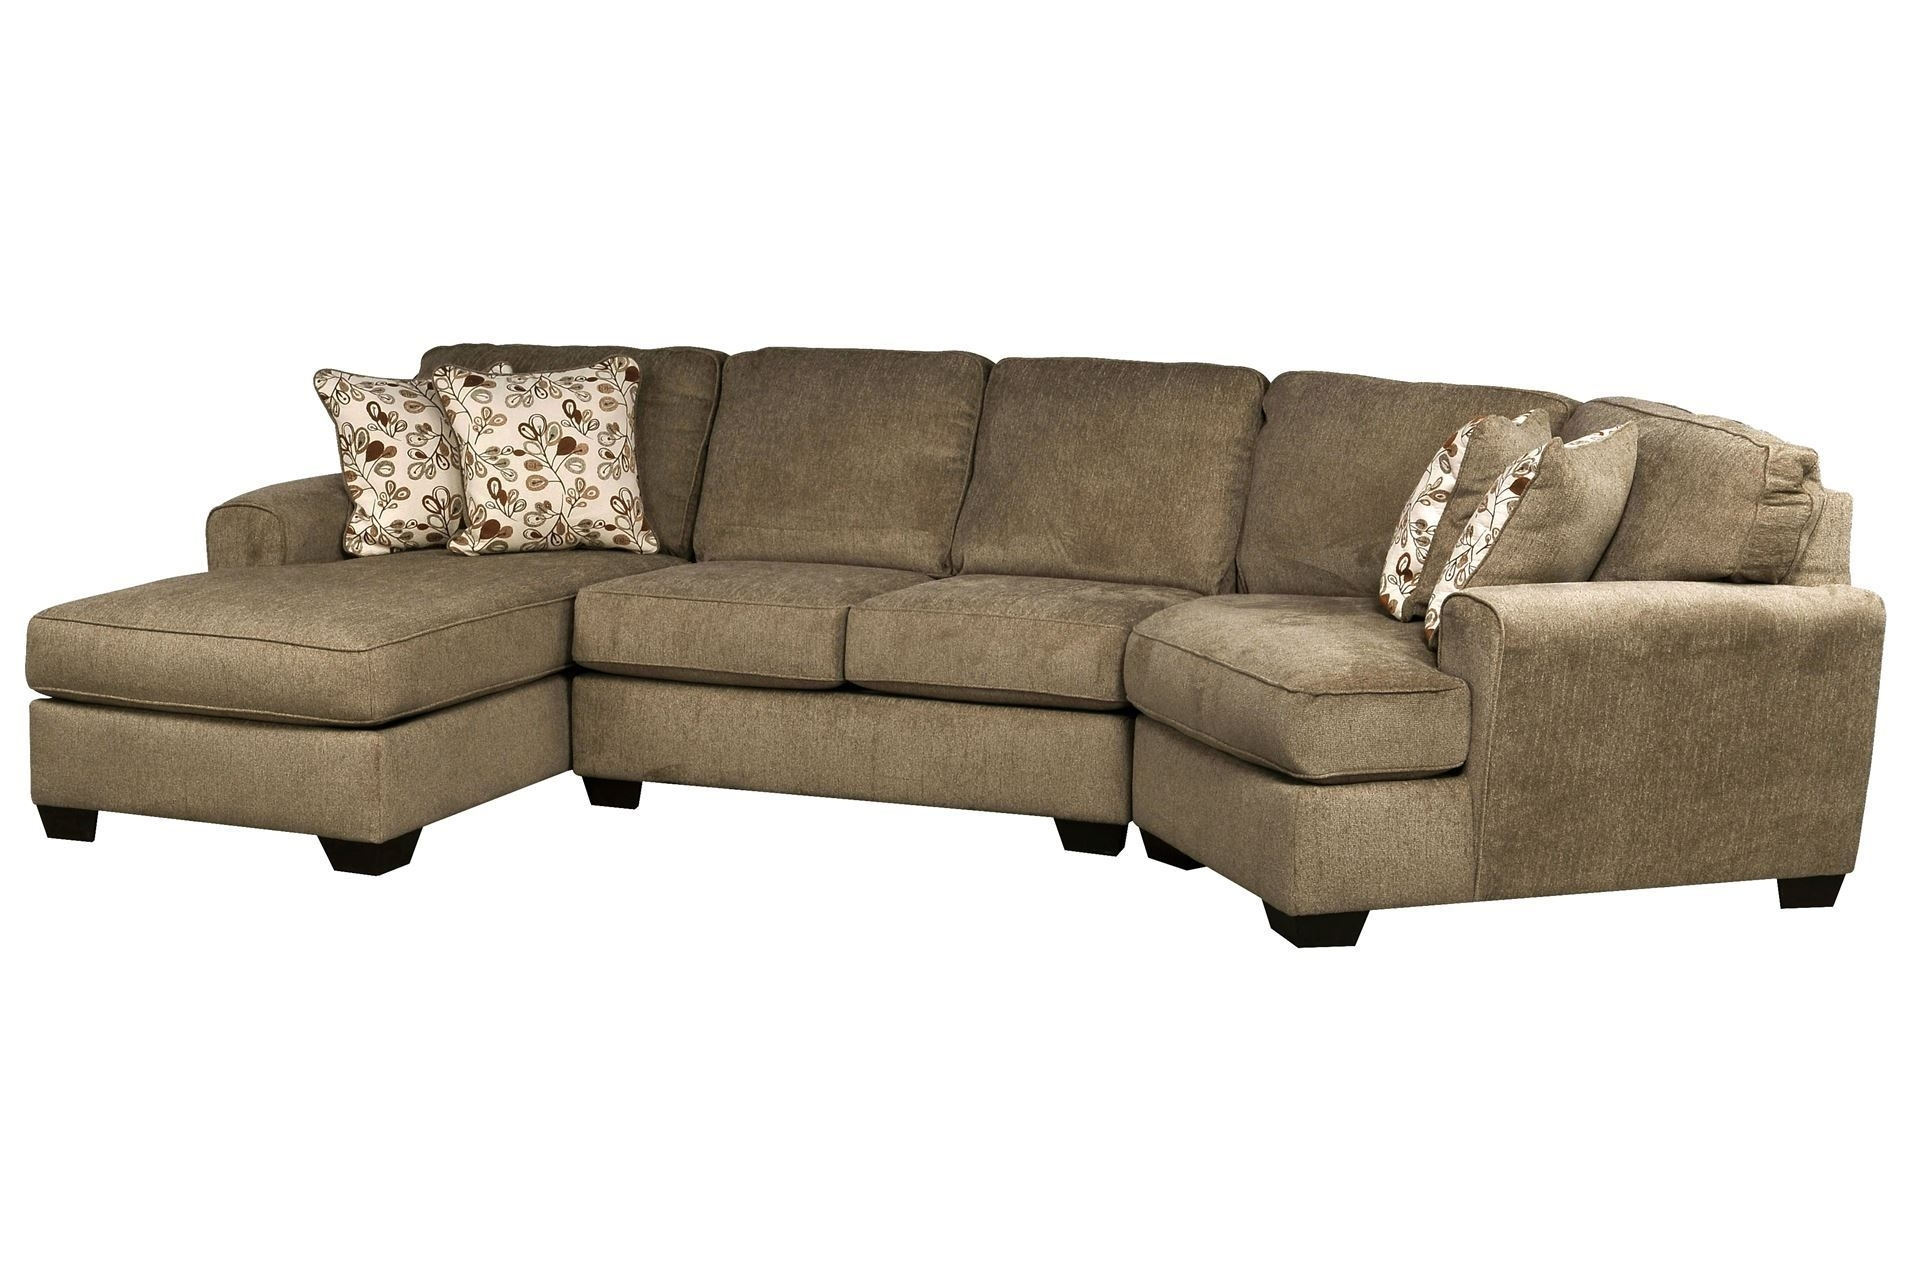 3 Piece Sectional Sofa Dimensions | Two Birds Home For Malbry Point 3 Piece Sectionals With Laf Chaise (View 17 of 25)